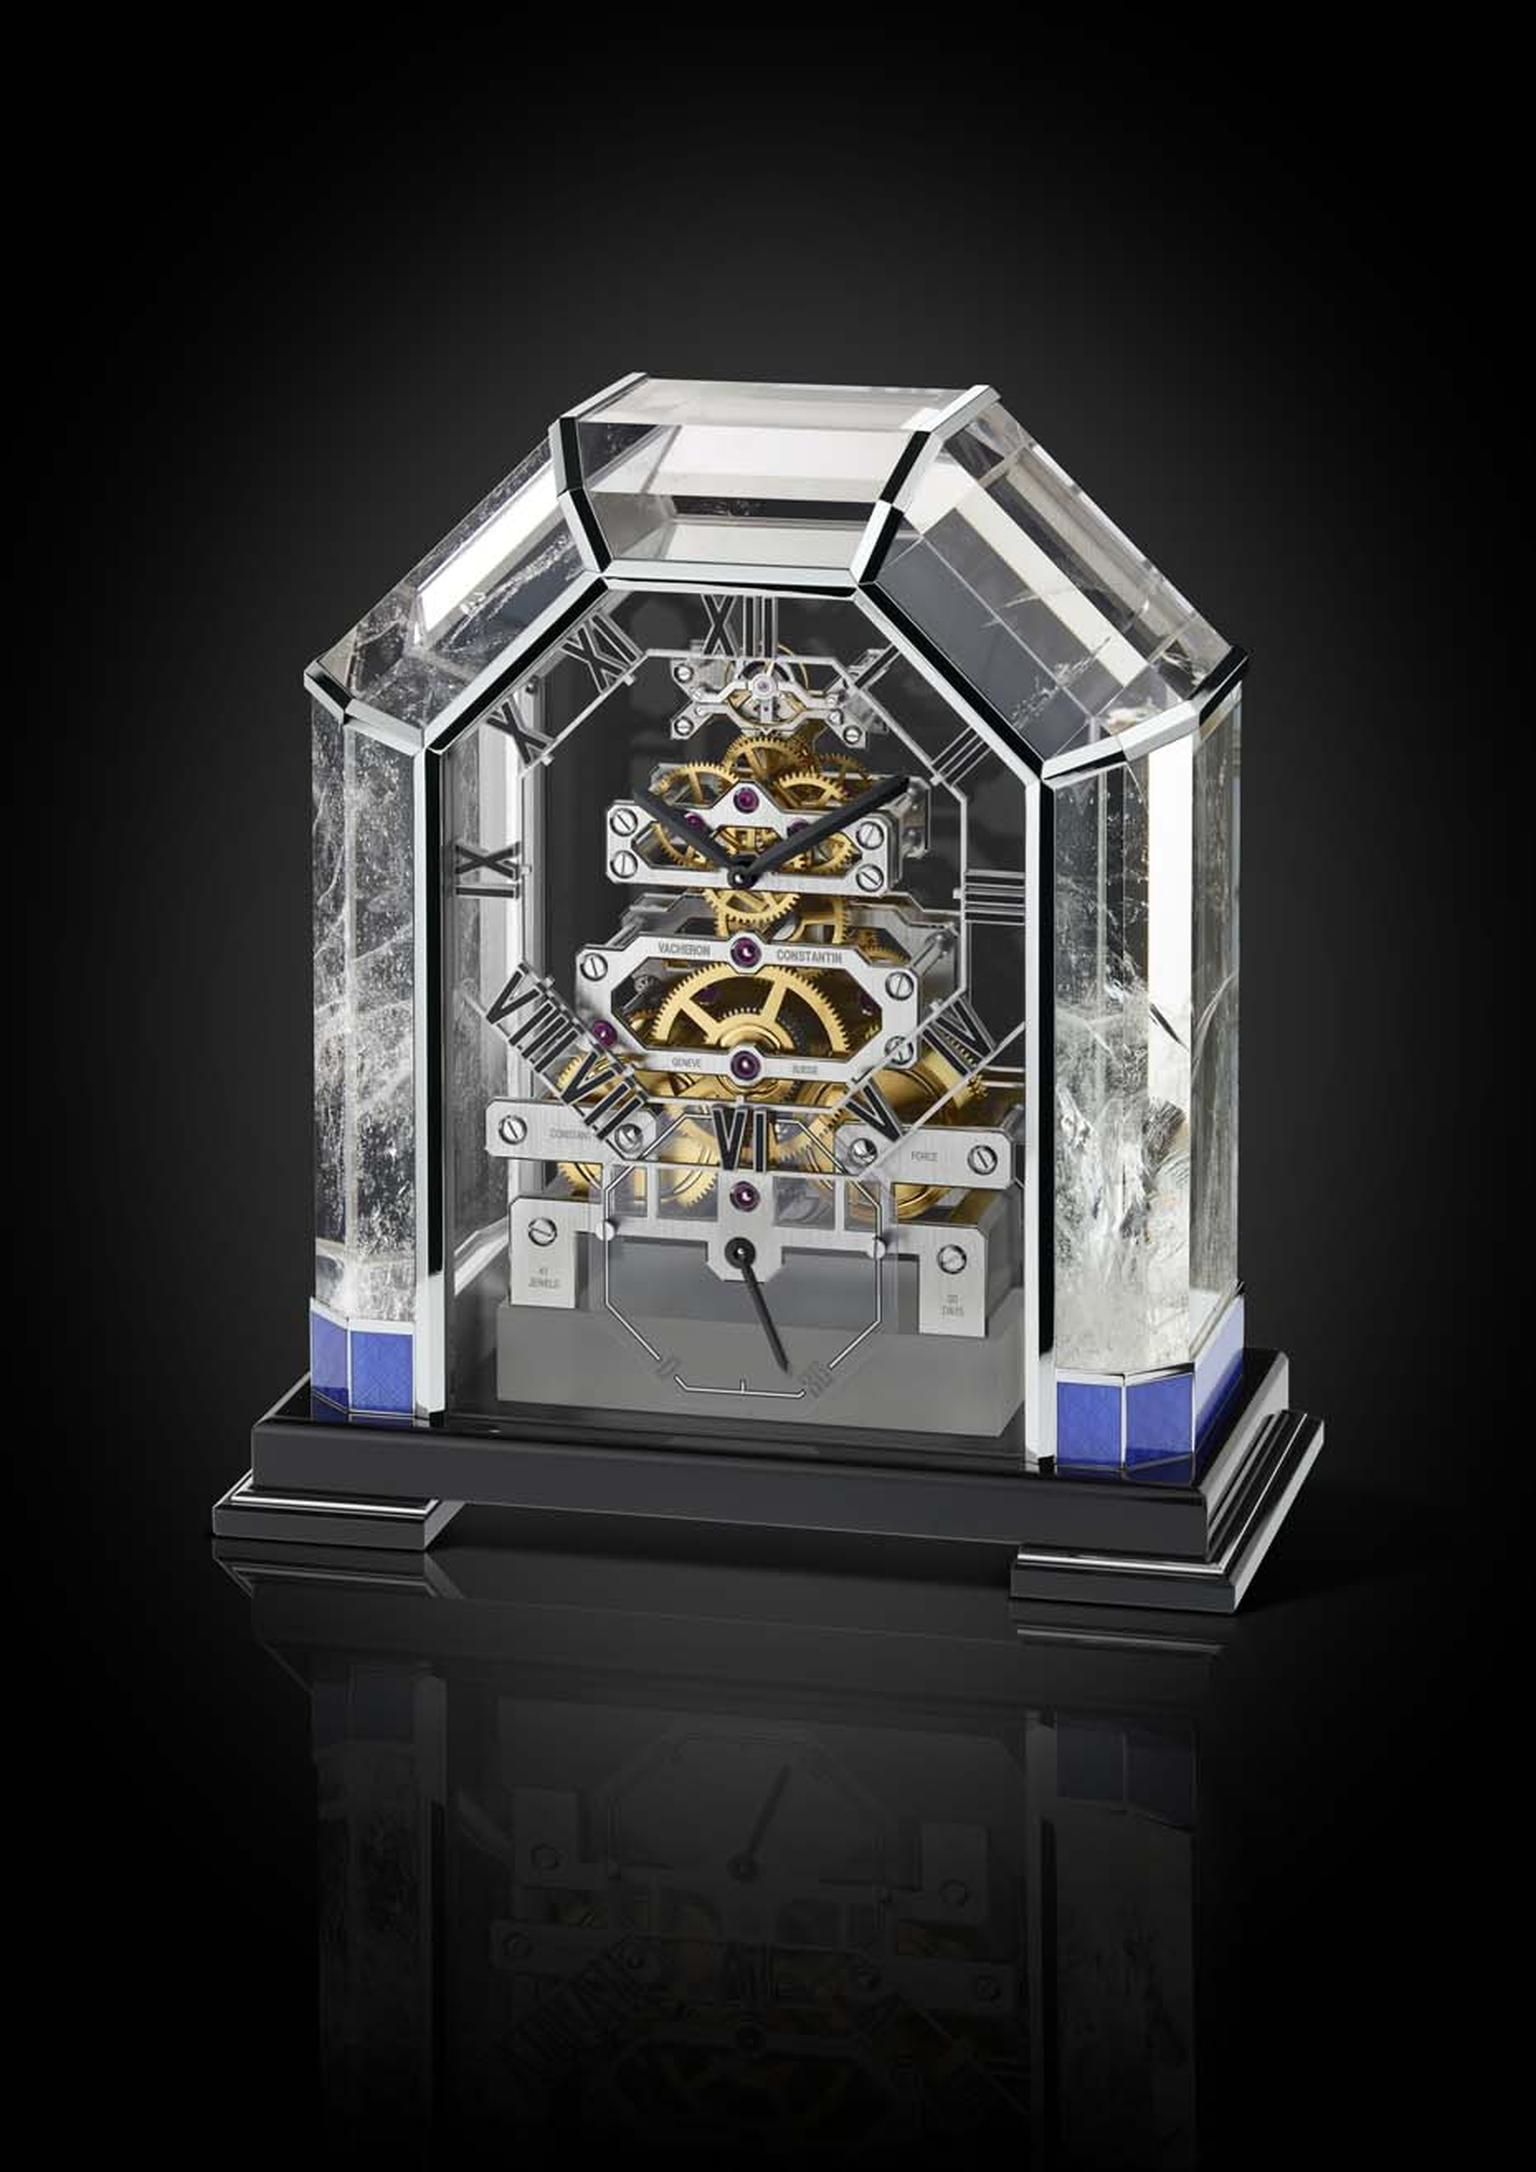 Vacheron Constantin has revisited one of its Art Deco table clocks from 1933 this year with the Arca, a unique and beautifully crafted clock made from rock crystal.